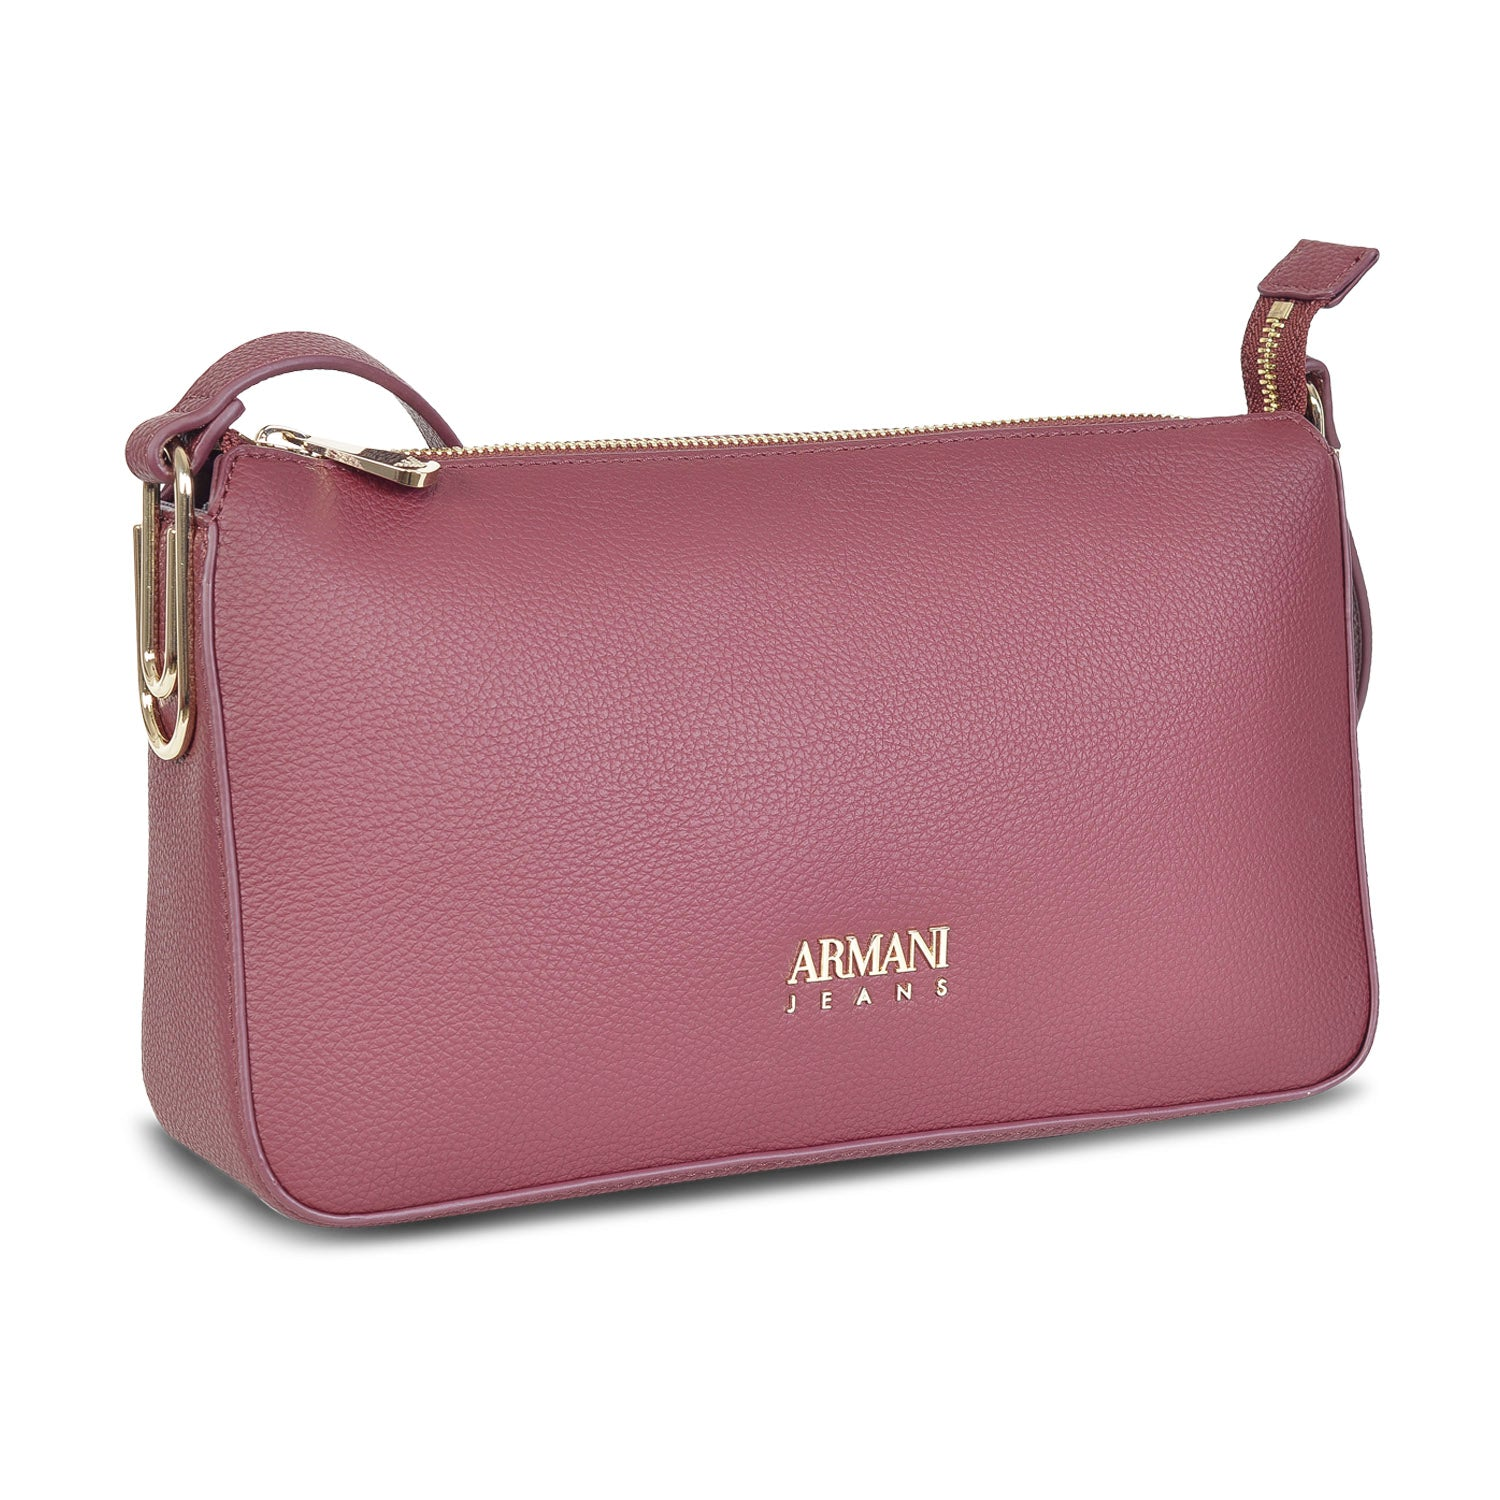 ARMANI DESIGNER WOMEN'S LEATHER MINI  SLING BAG